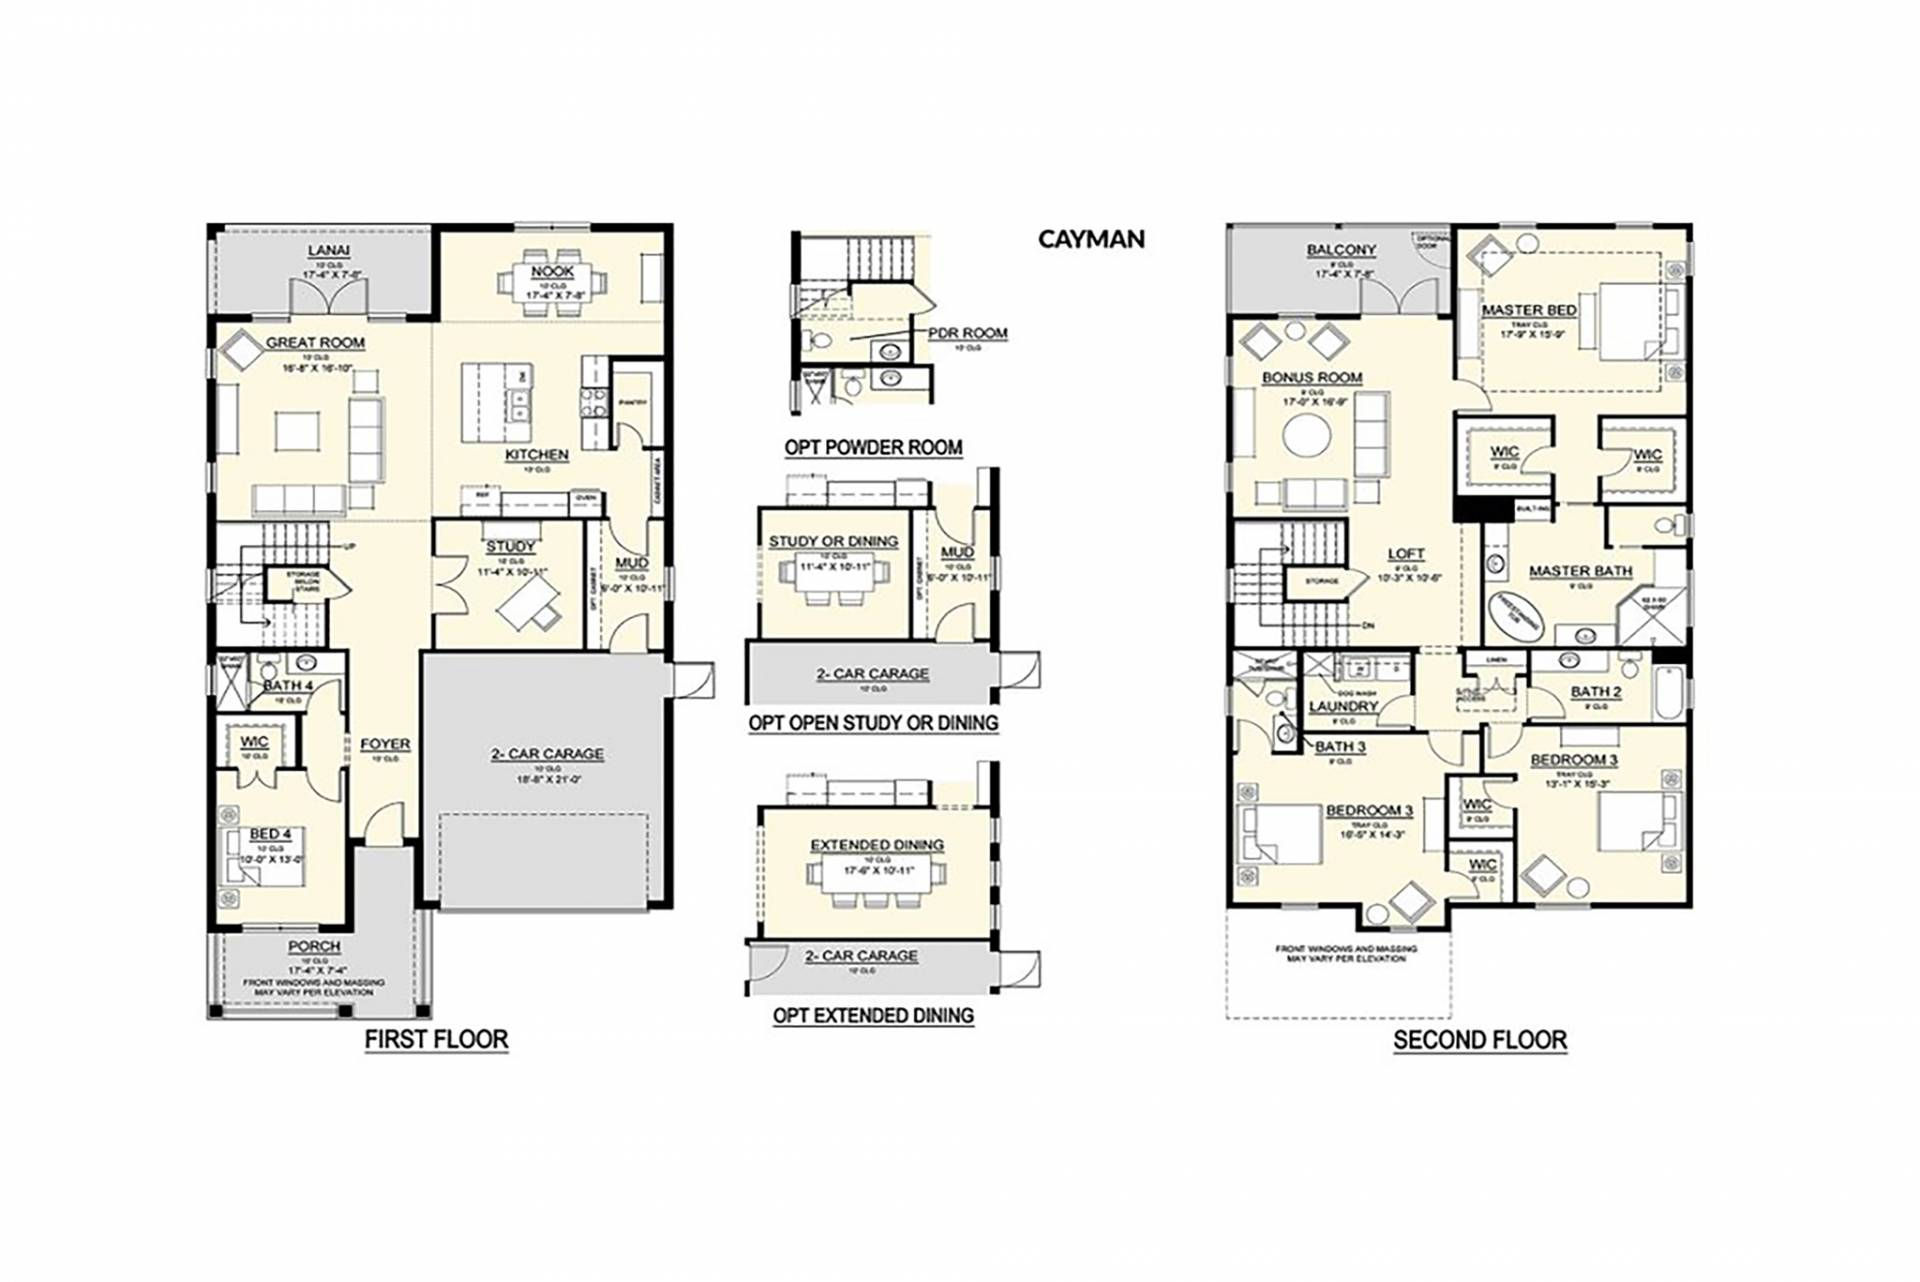 floor plan designed and built by New Legacy Homes, best of South Tampa homebuilder